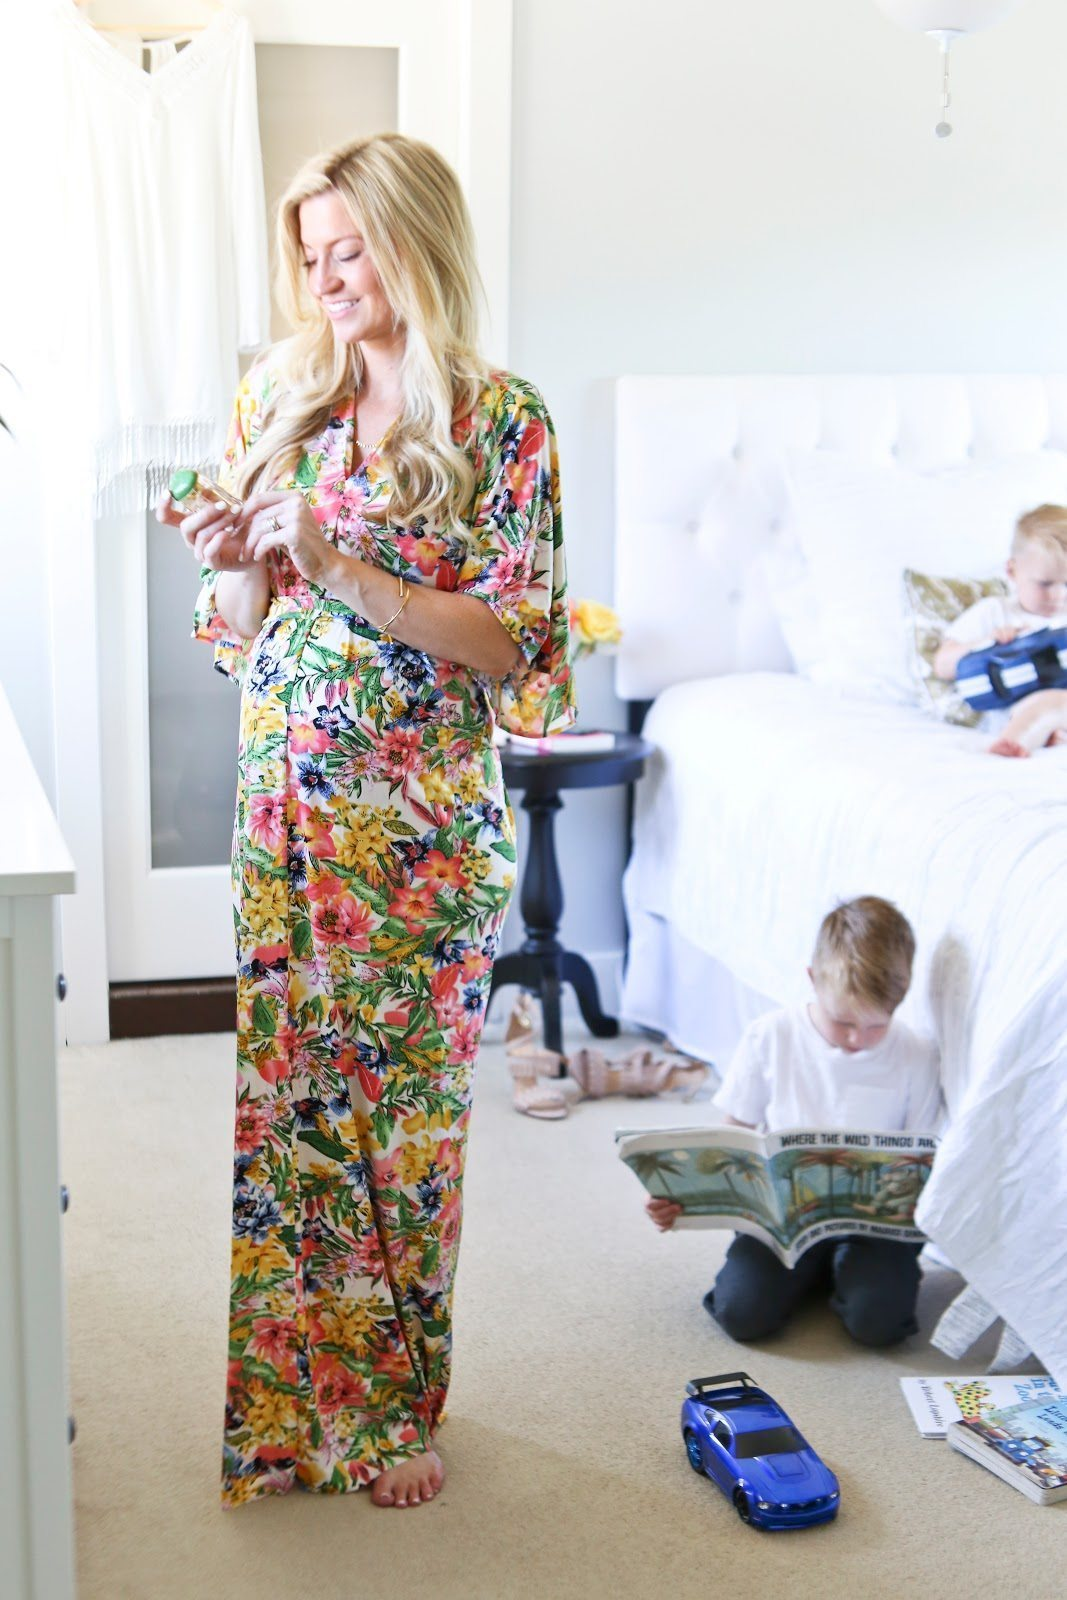 EVERYDAY ELEGANCE: 4 TIPS TO ADDING A LITTLE LUXURY TO LIFE AS A MOM